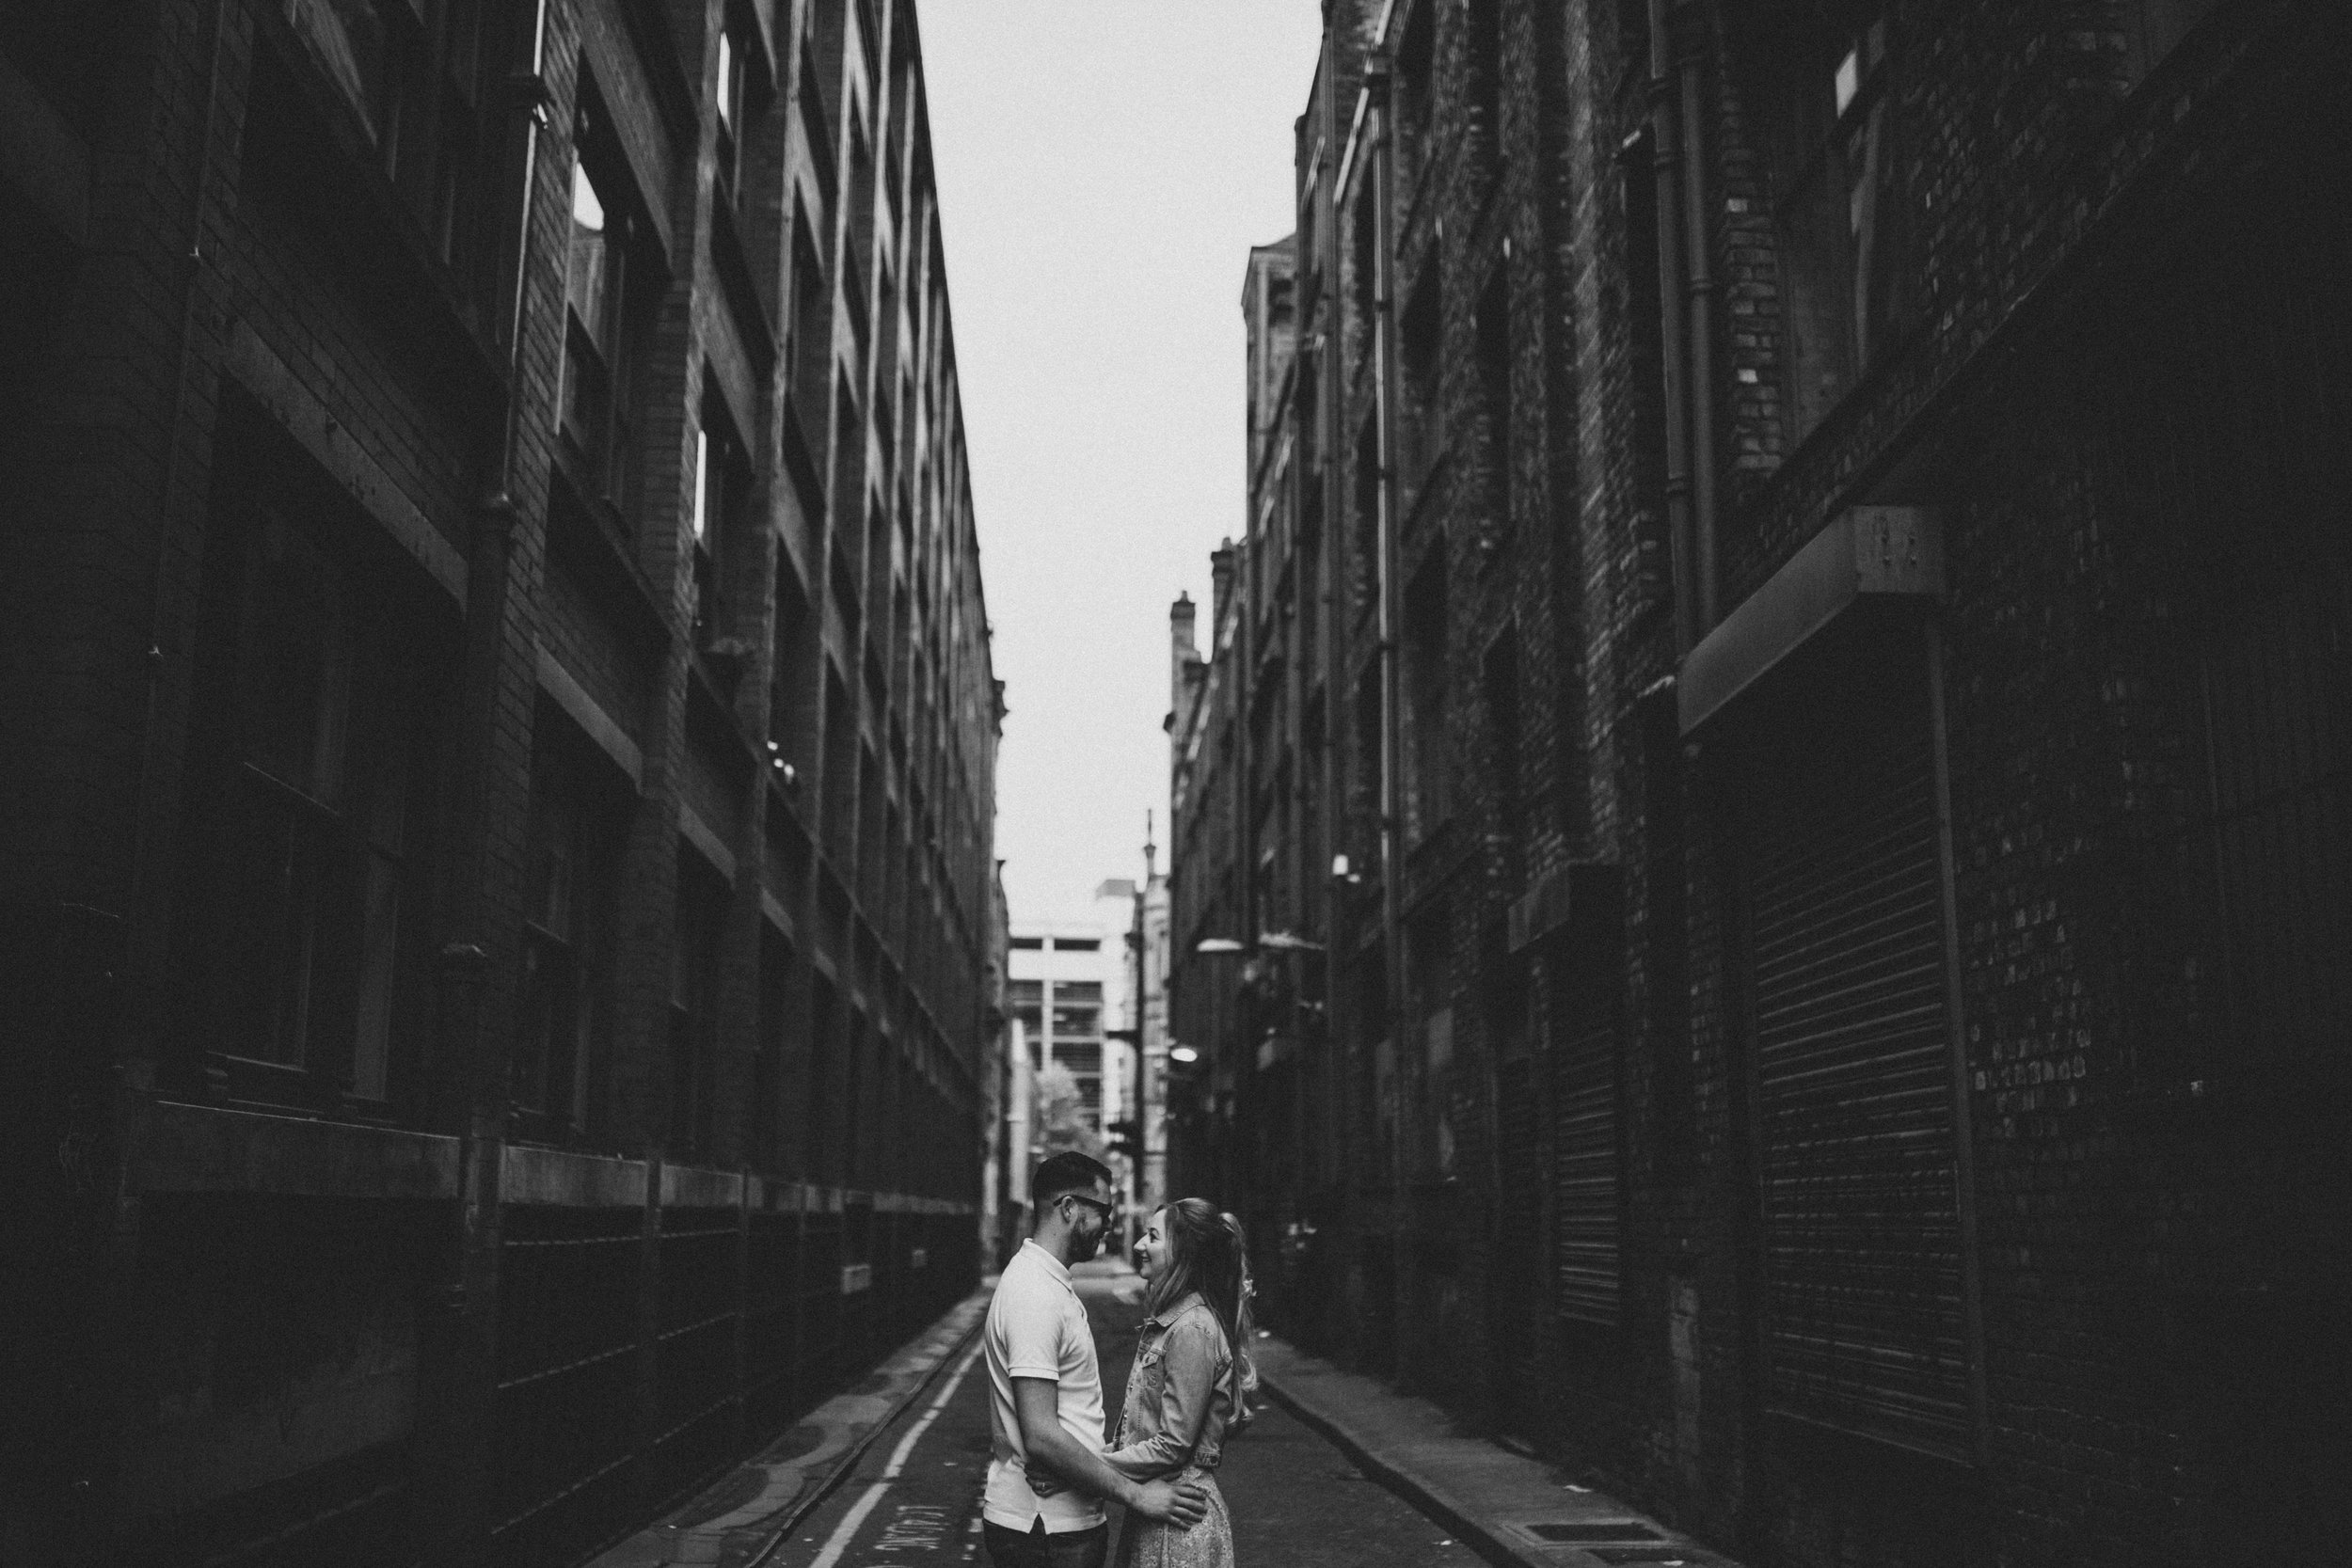 Northern Quarter alleyway pre-wedding shoot